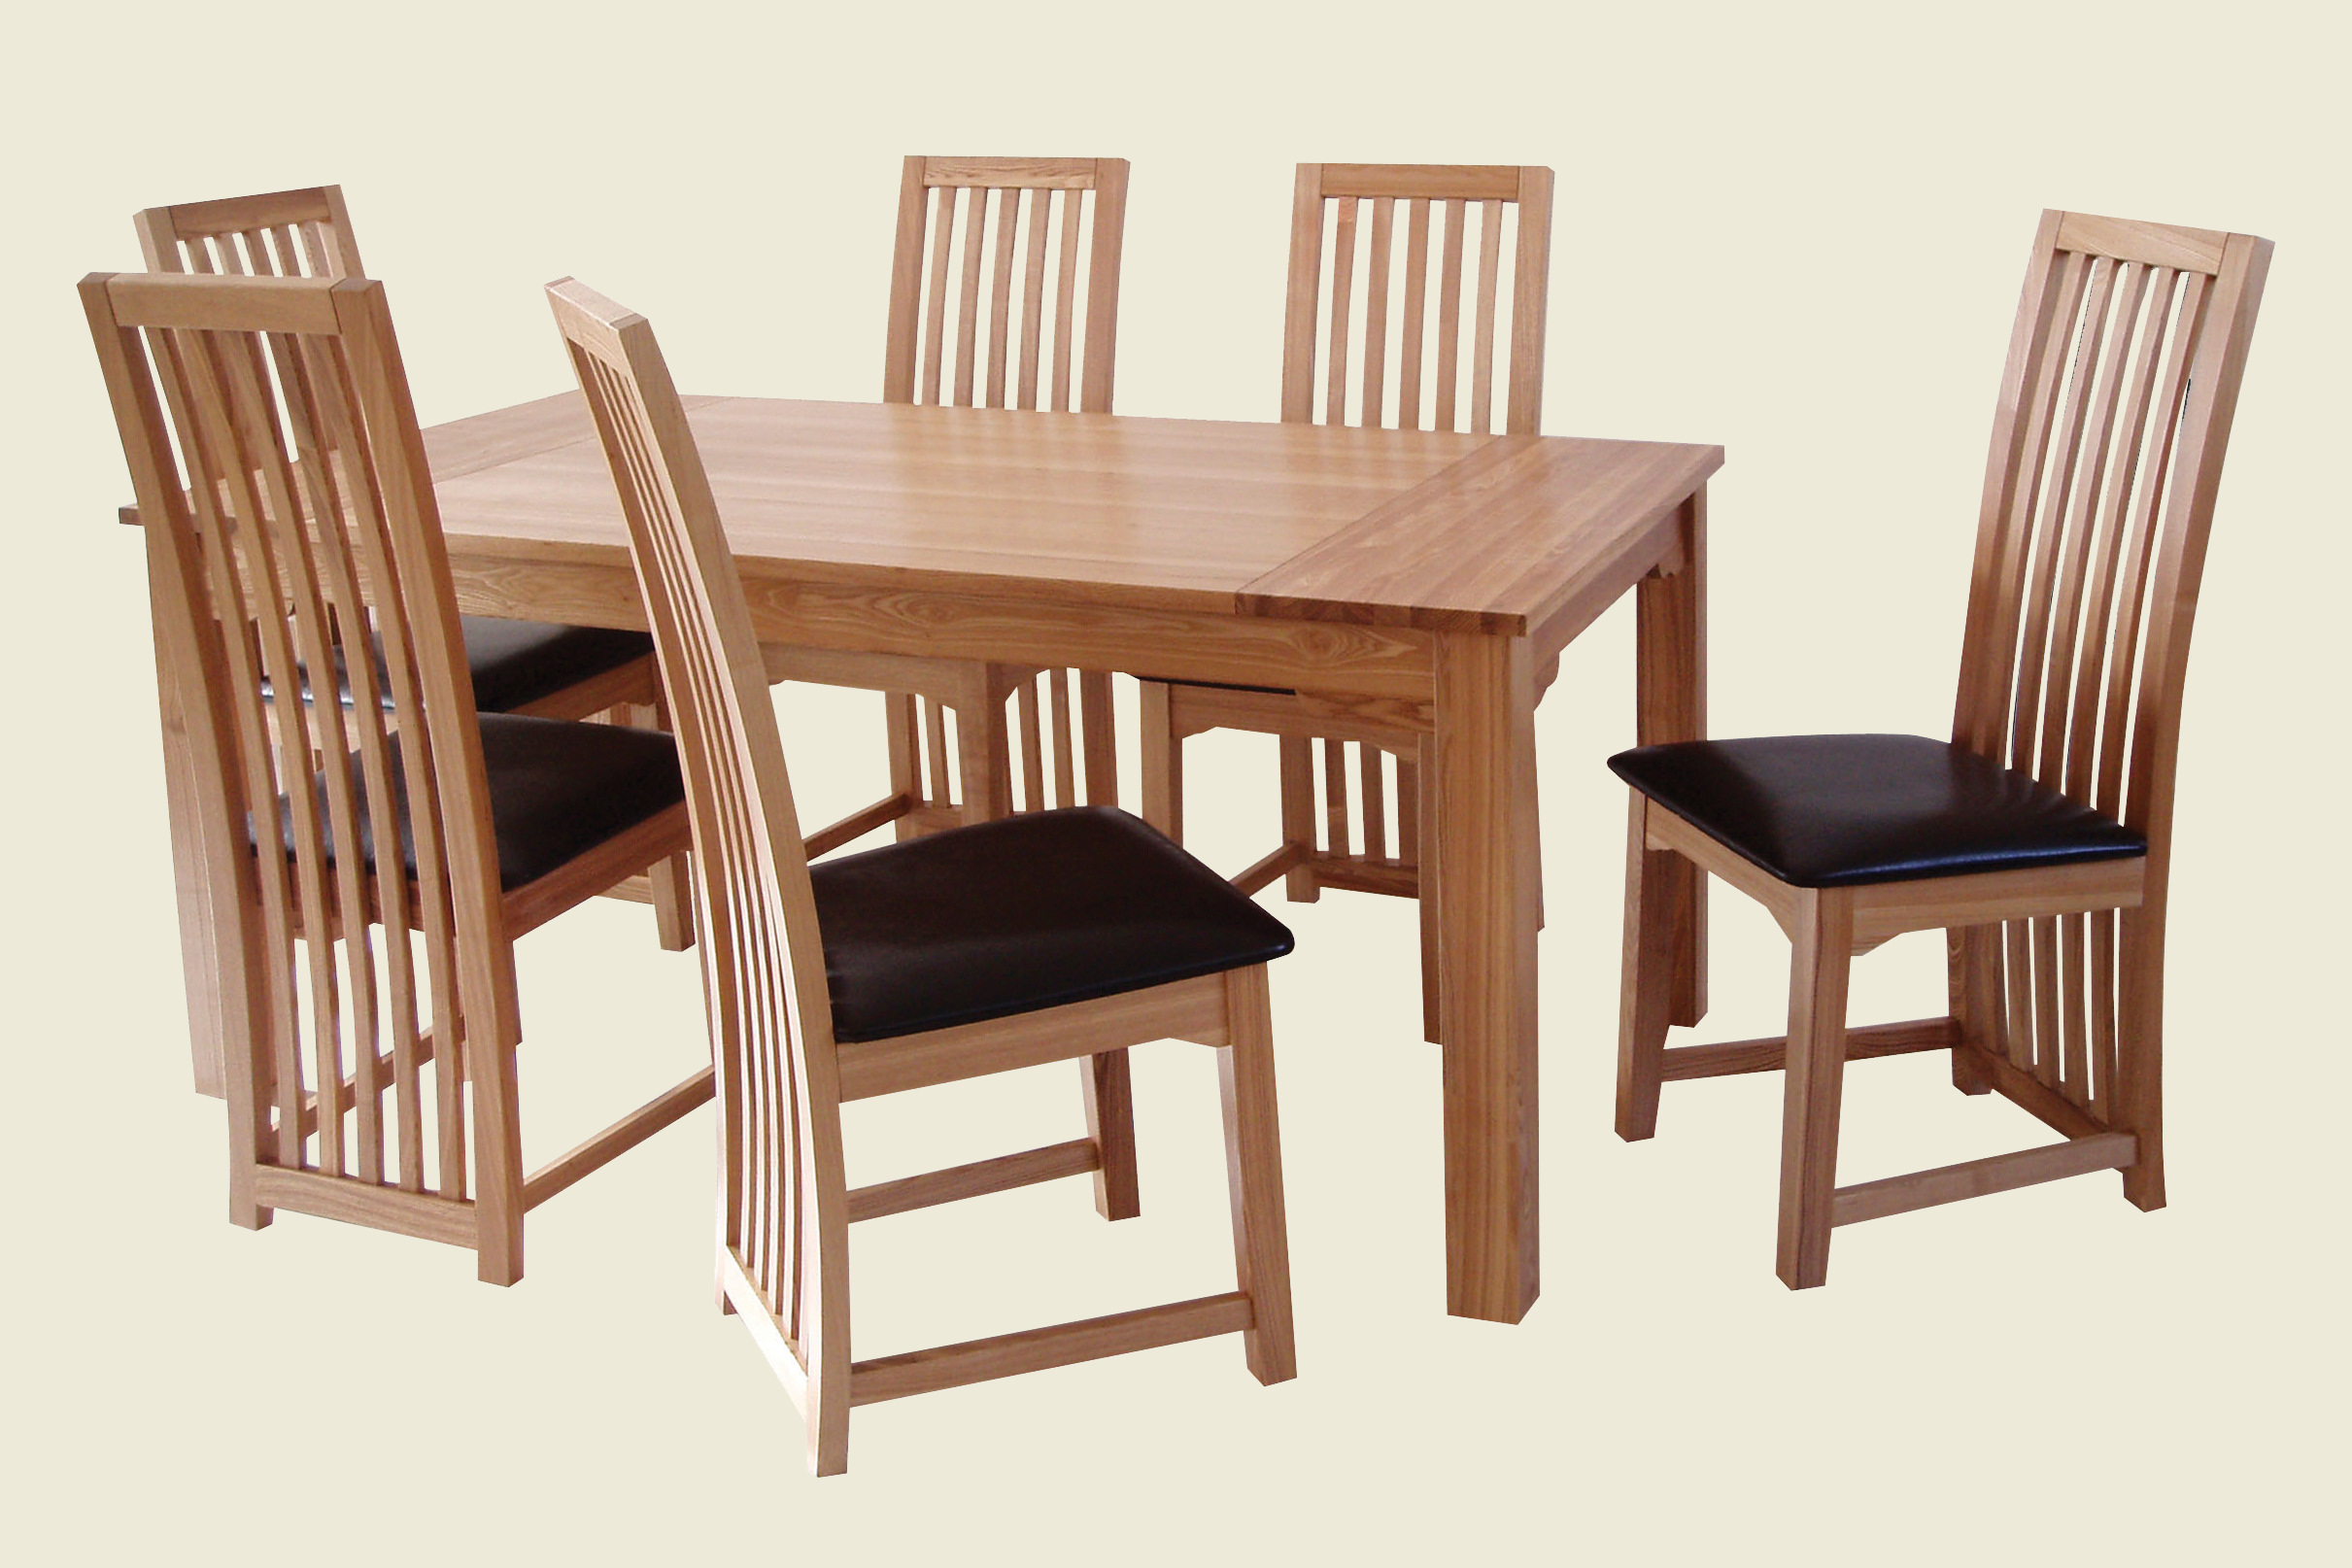 Zz ashbourne dining table 6 chair set for Six chair dining table set